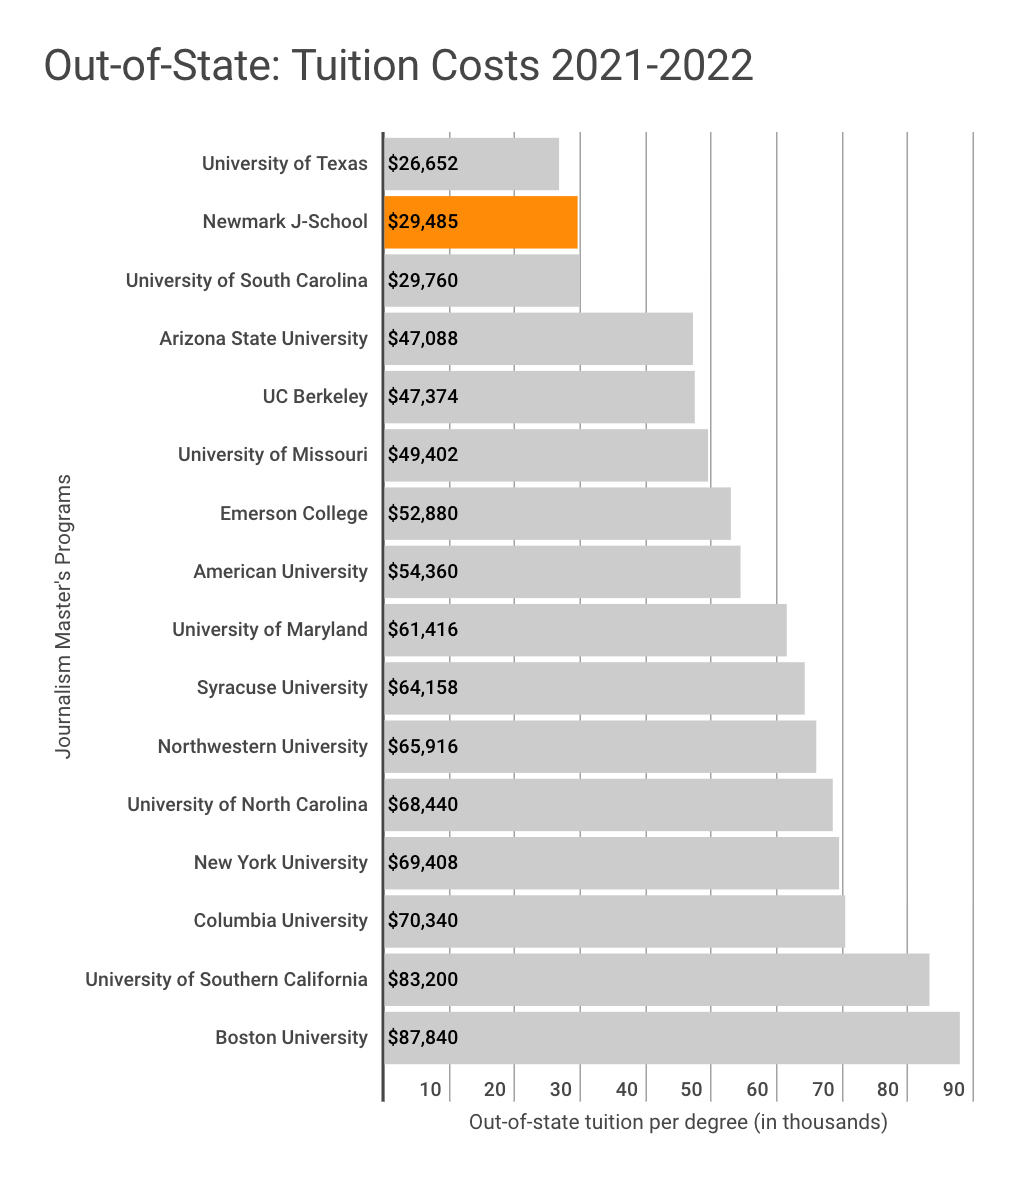 Tuition comparison chart for out-of-state students in 2021-2022 academic year. This chart shows that the Craig Newmark Graduate School of Journalism's out-of-state tuition of $29,485 is the second lowest among 16 of the most popular journalism graduate programs in the United States. The University of Texas has the lowest out-of-state tuition at $26,65. The highest out-of-state tuition shown in this chart corresponds to Boston University at $87,840.